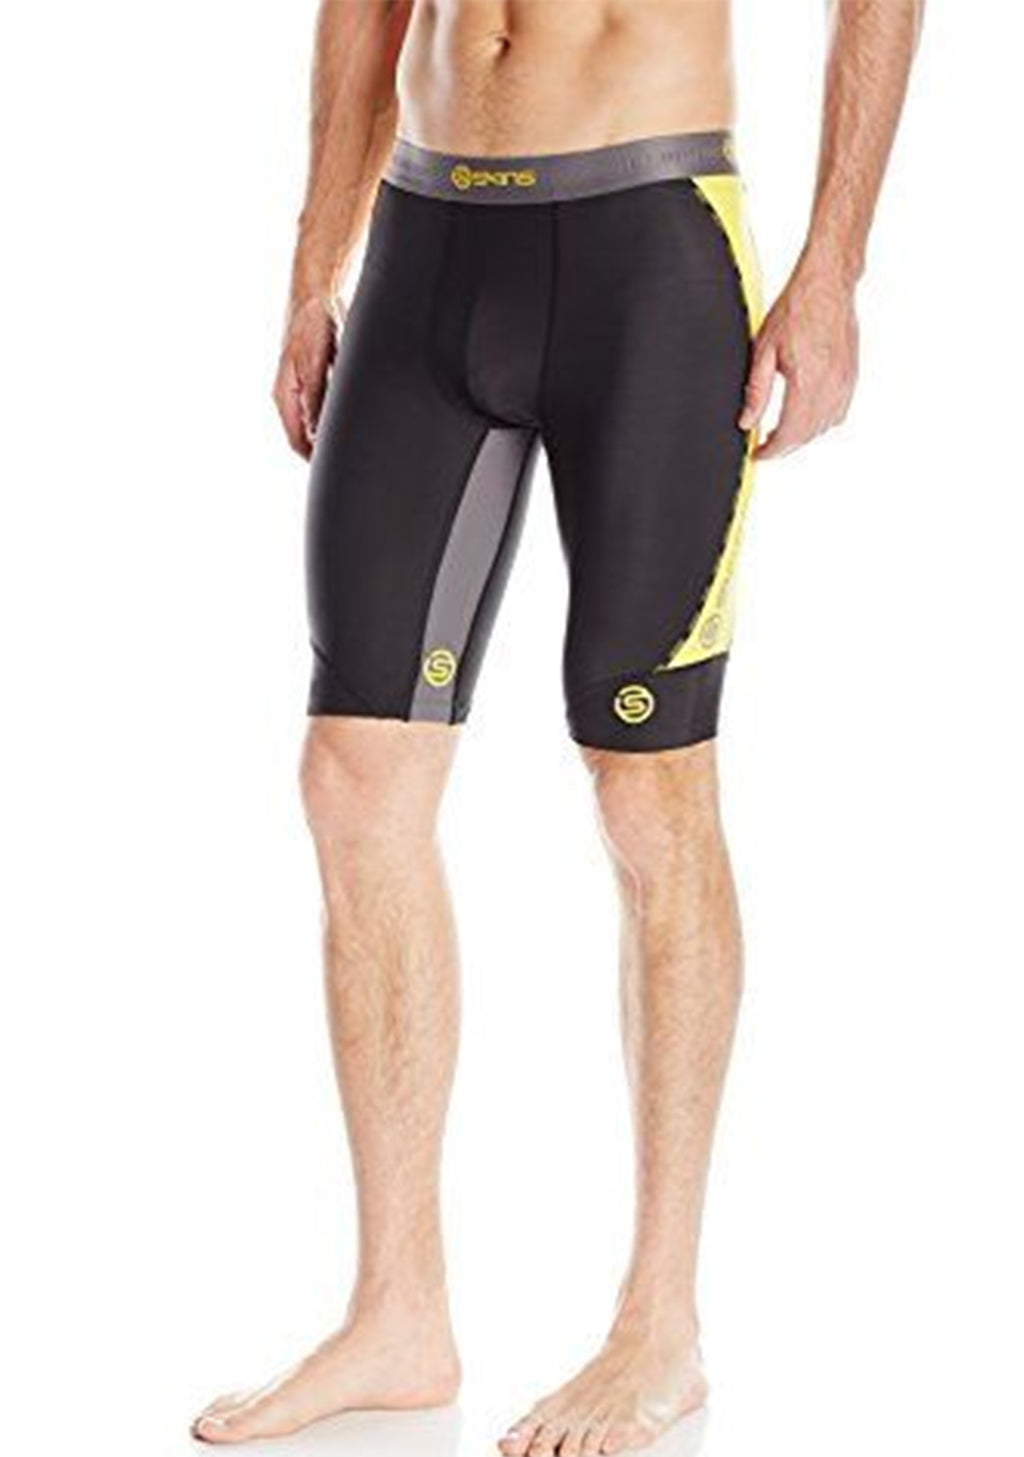 SKINS MENS DNAMIC HALF TIGHT (BLACK/CITRON) <BR> DA99050029238